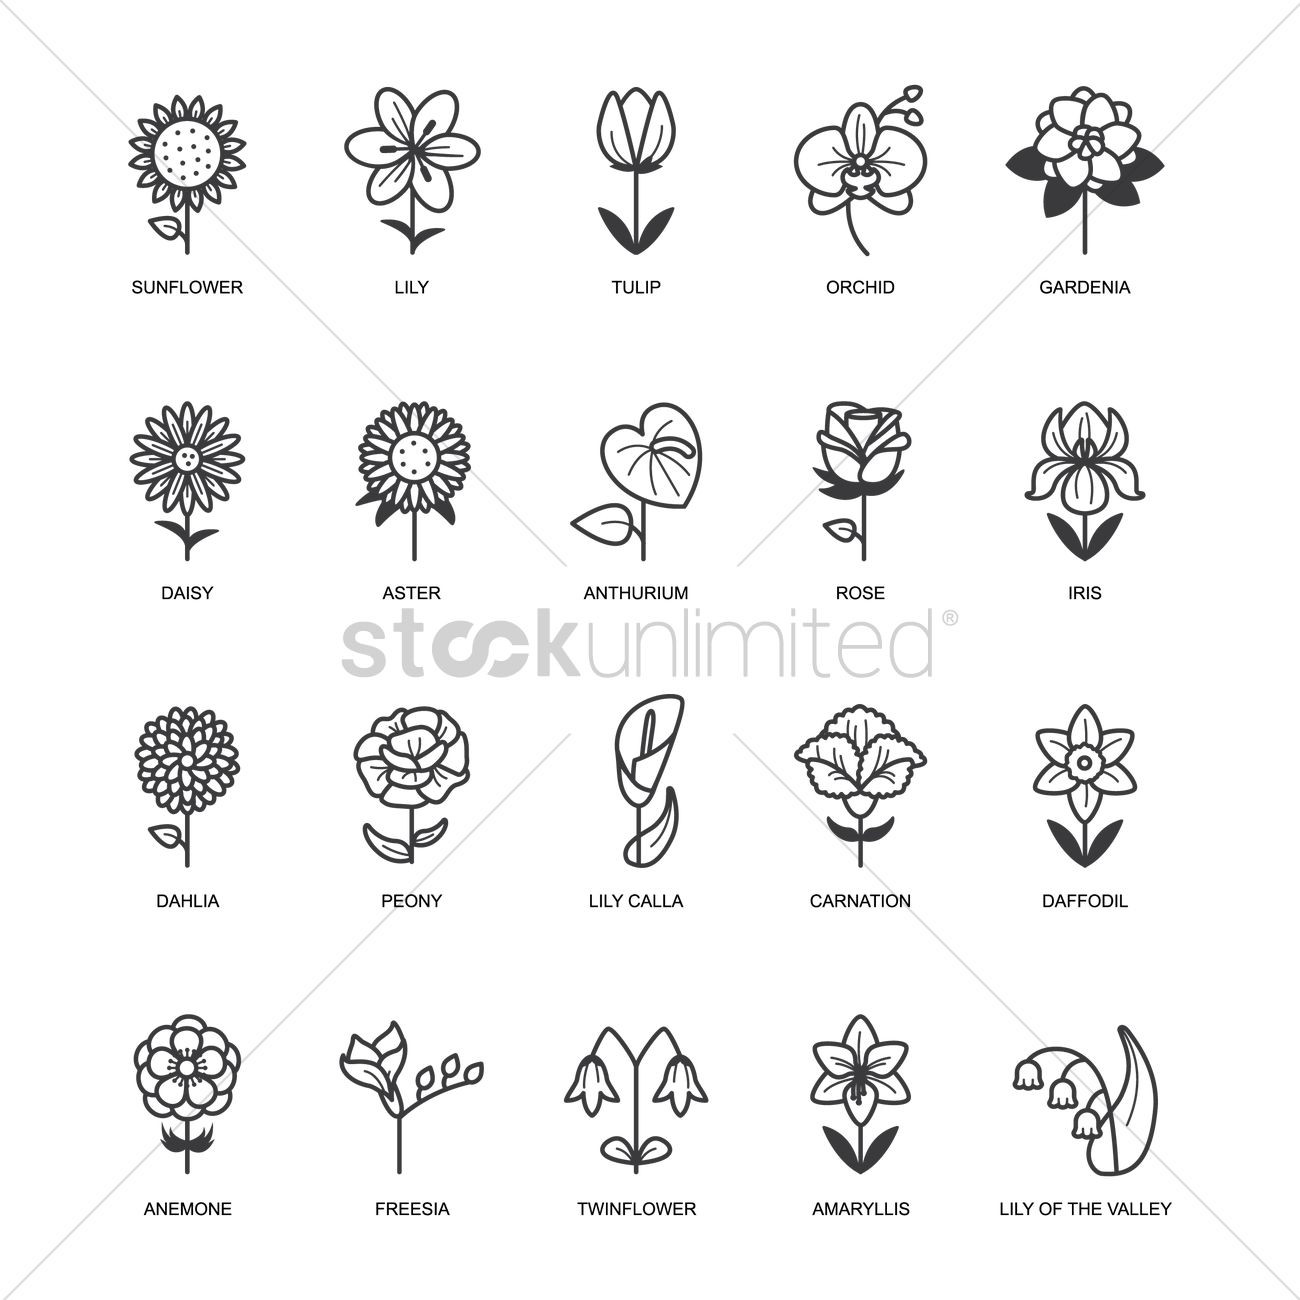 Flower Keyboard Symbol